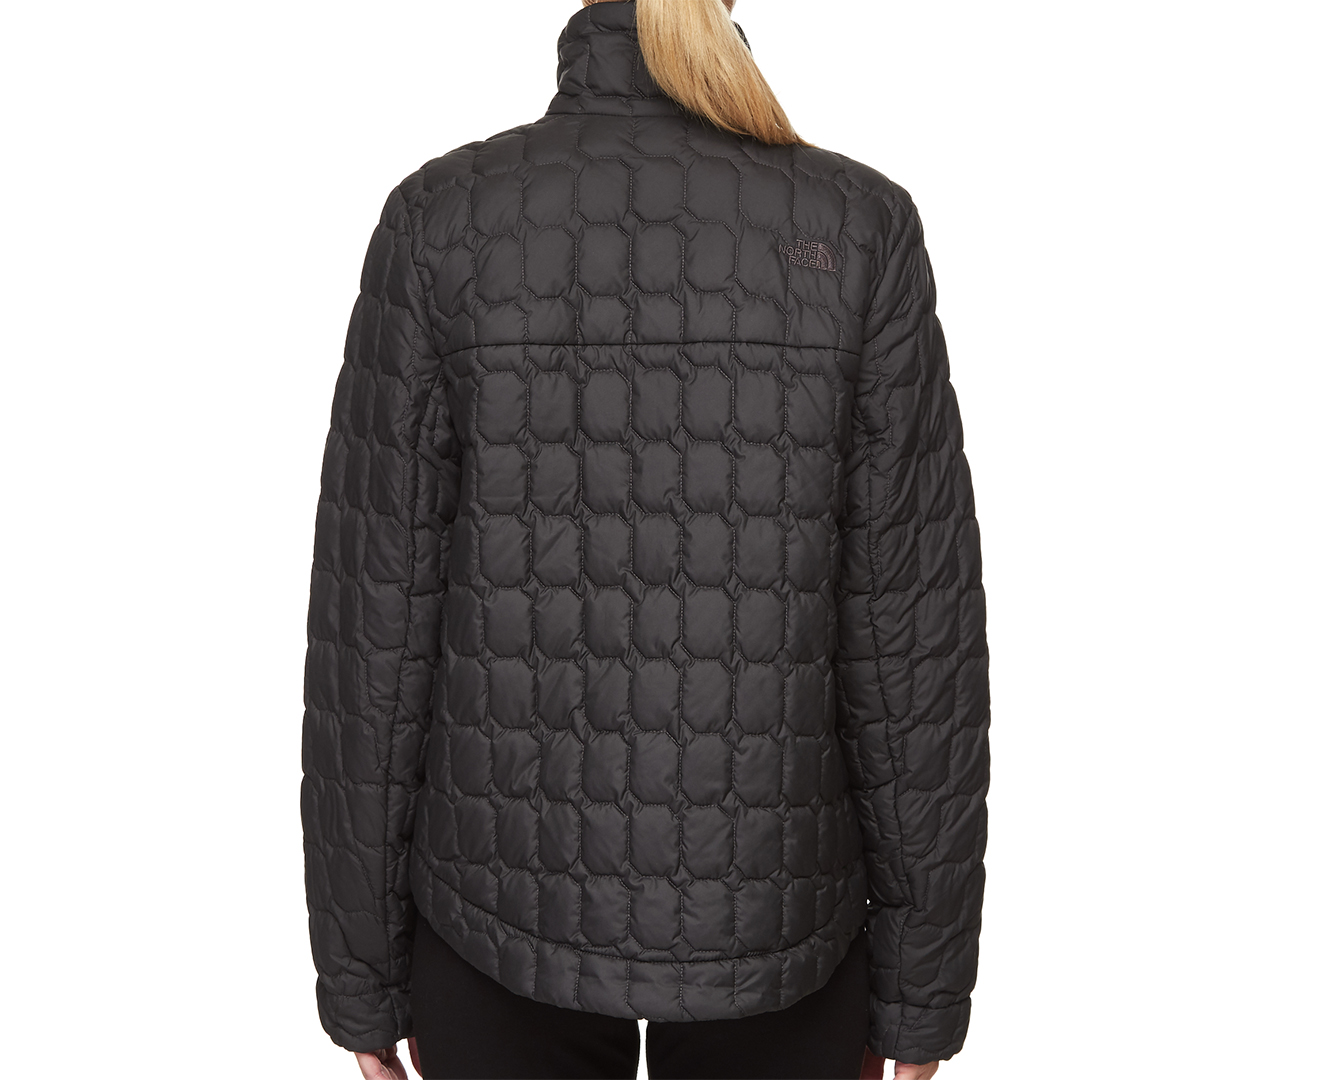 62cb28b04 The North Face Women's ThermoBall™ Insulated Crop Jacket - Asphalt Grey